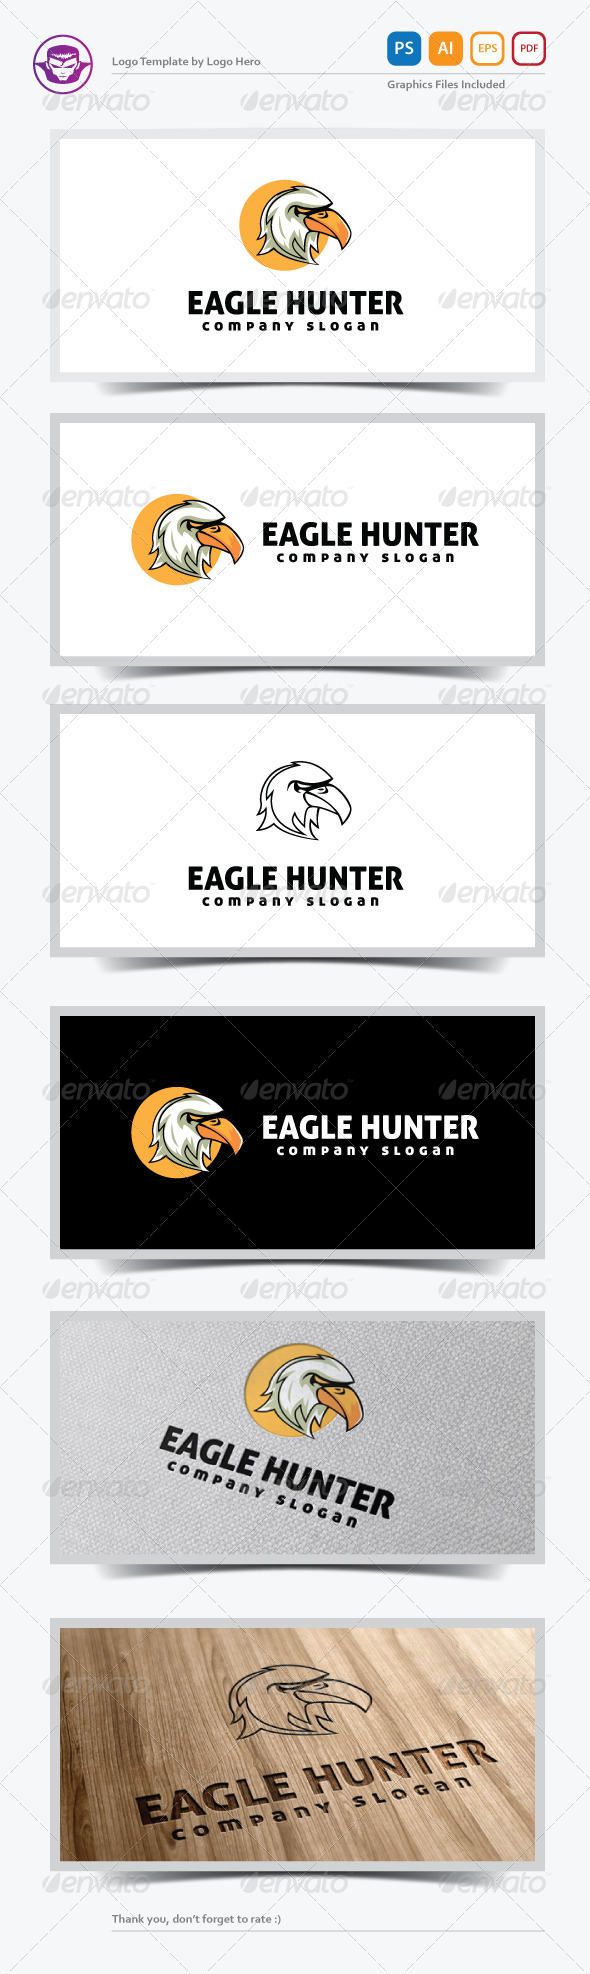 GraphicRiver Eagle Hunter Logo Template 5478157